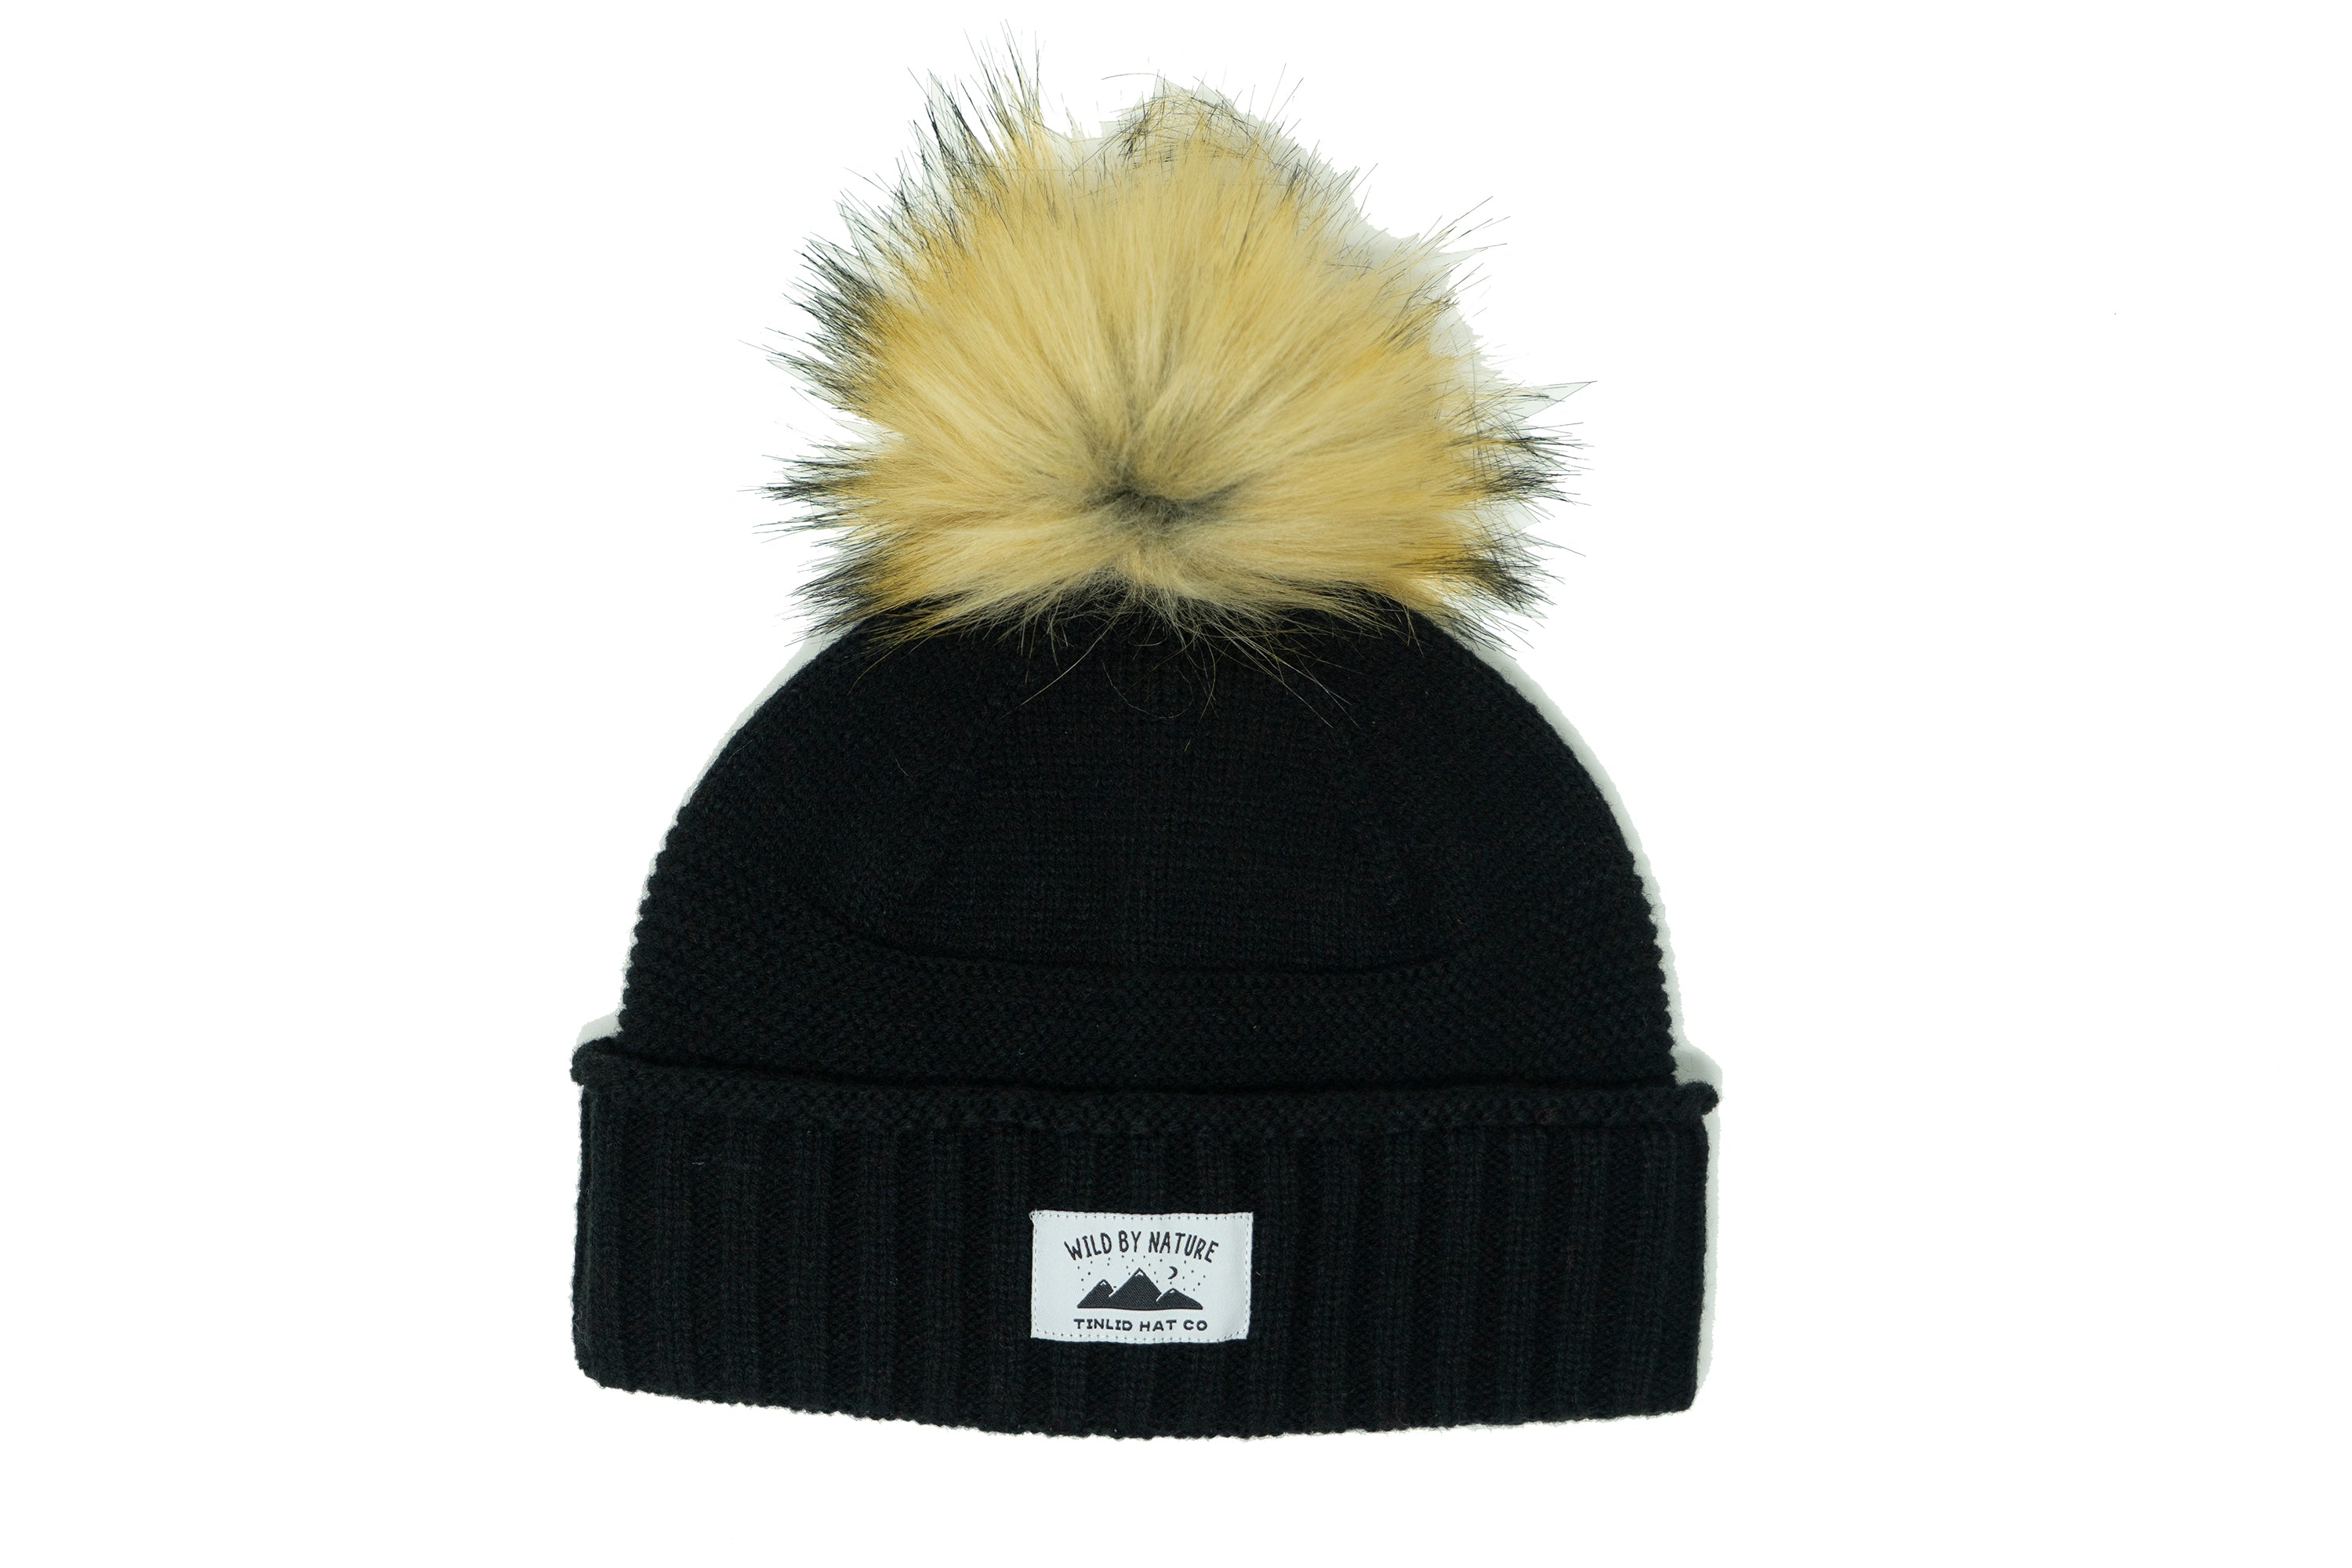 The Black Wild By Nature Beanie